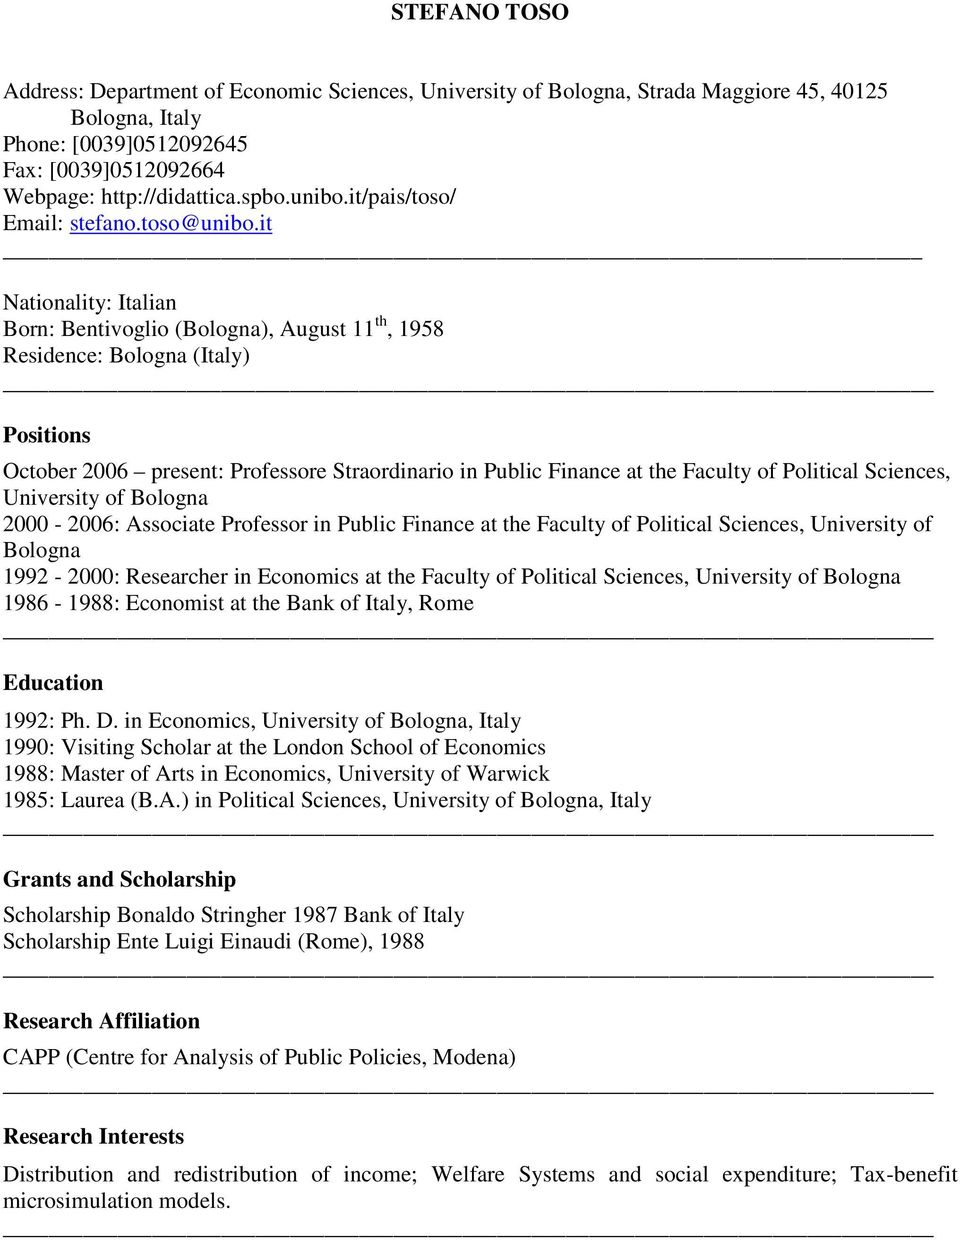 it Nationality: Italian Born: Bentivoglio (Bologna), August 11 th, 1958 Residence: Bologna (Italy) Positions October 2006 present: Professore Straordinario in Public Finance at the Faculty of